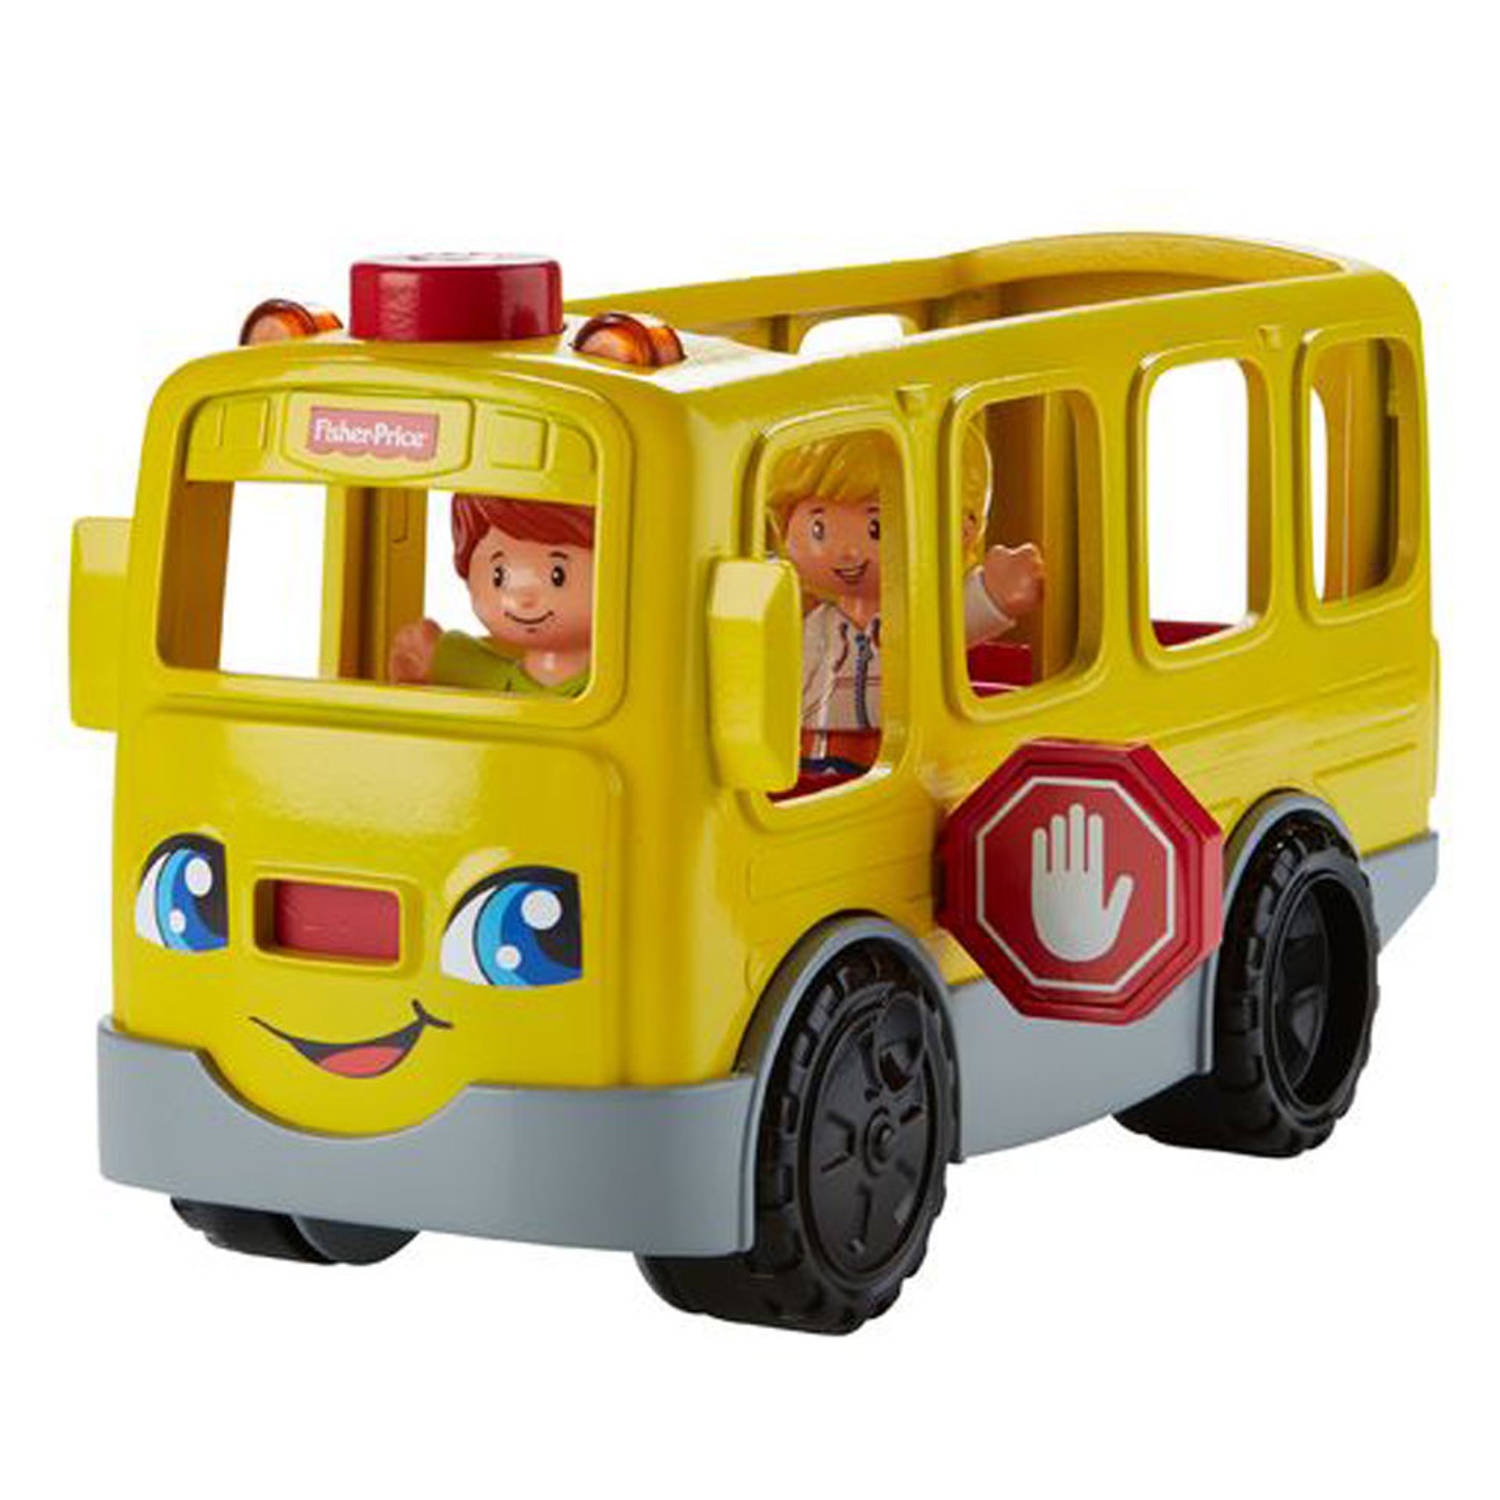 Fisher-price Little People Zit Naast Mij Schoolbus